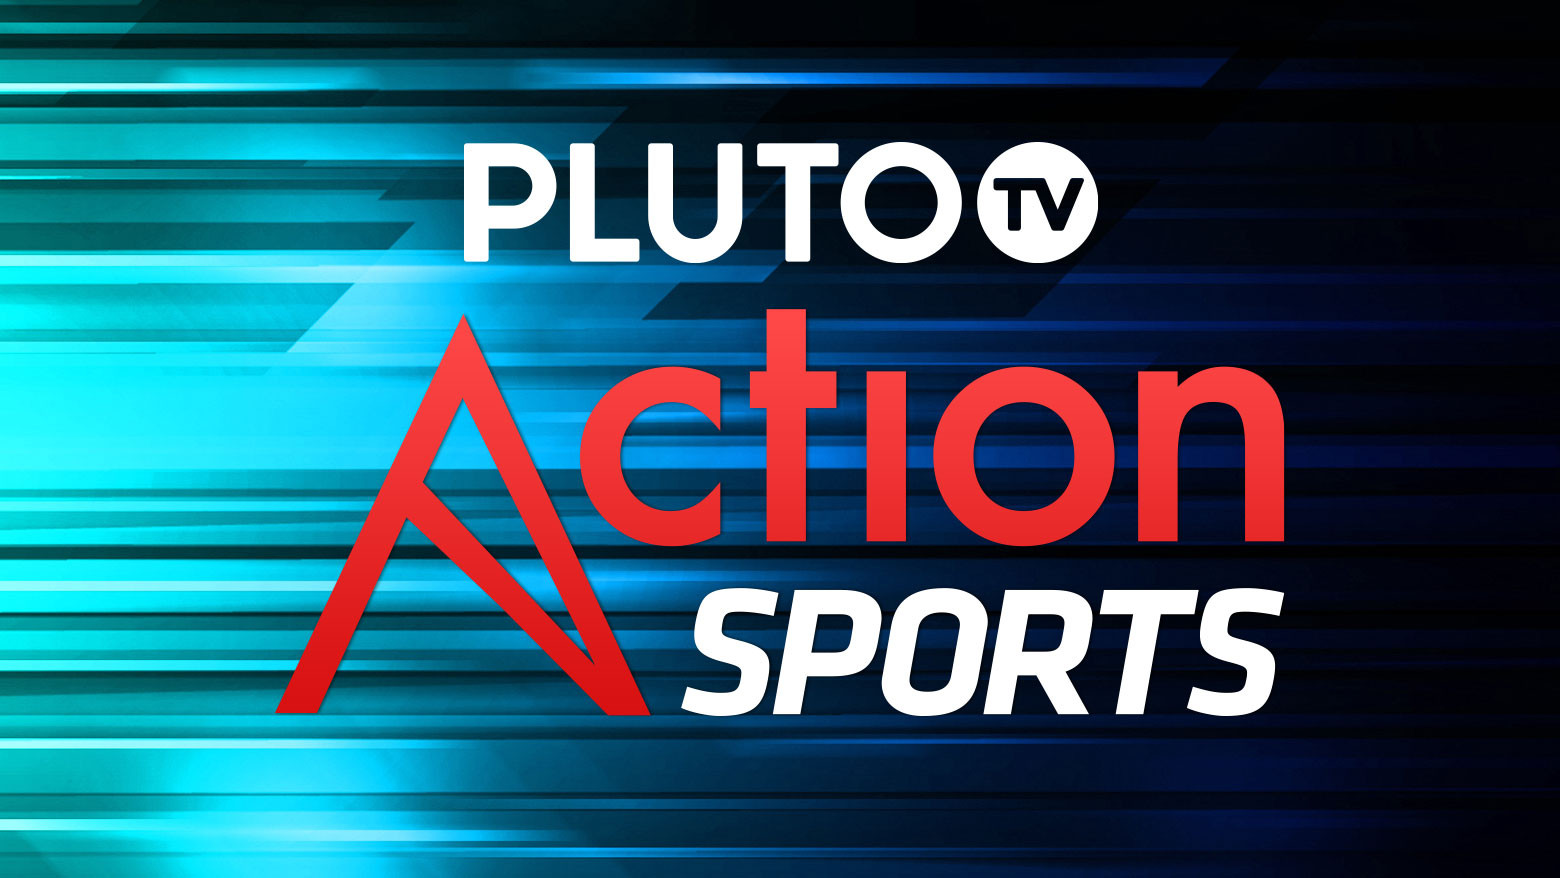 Pluto TV action sports featuredImage new